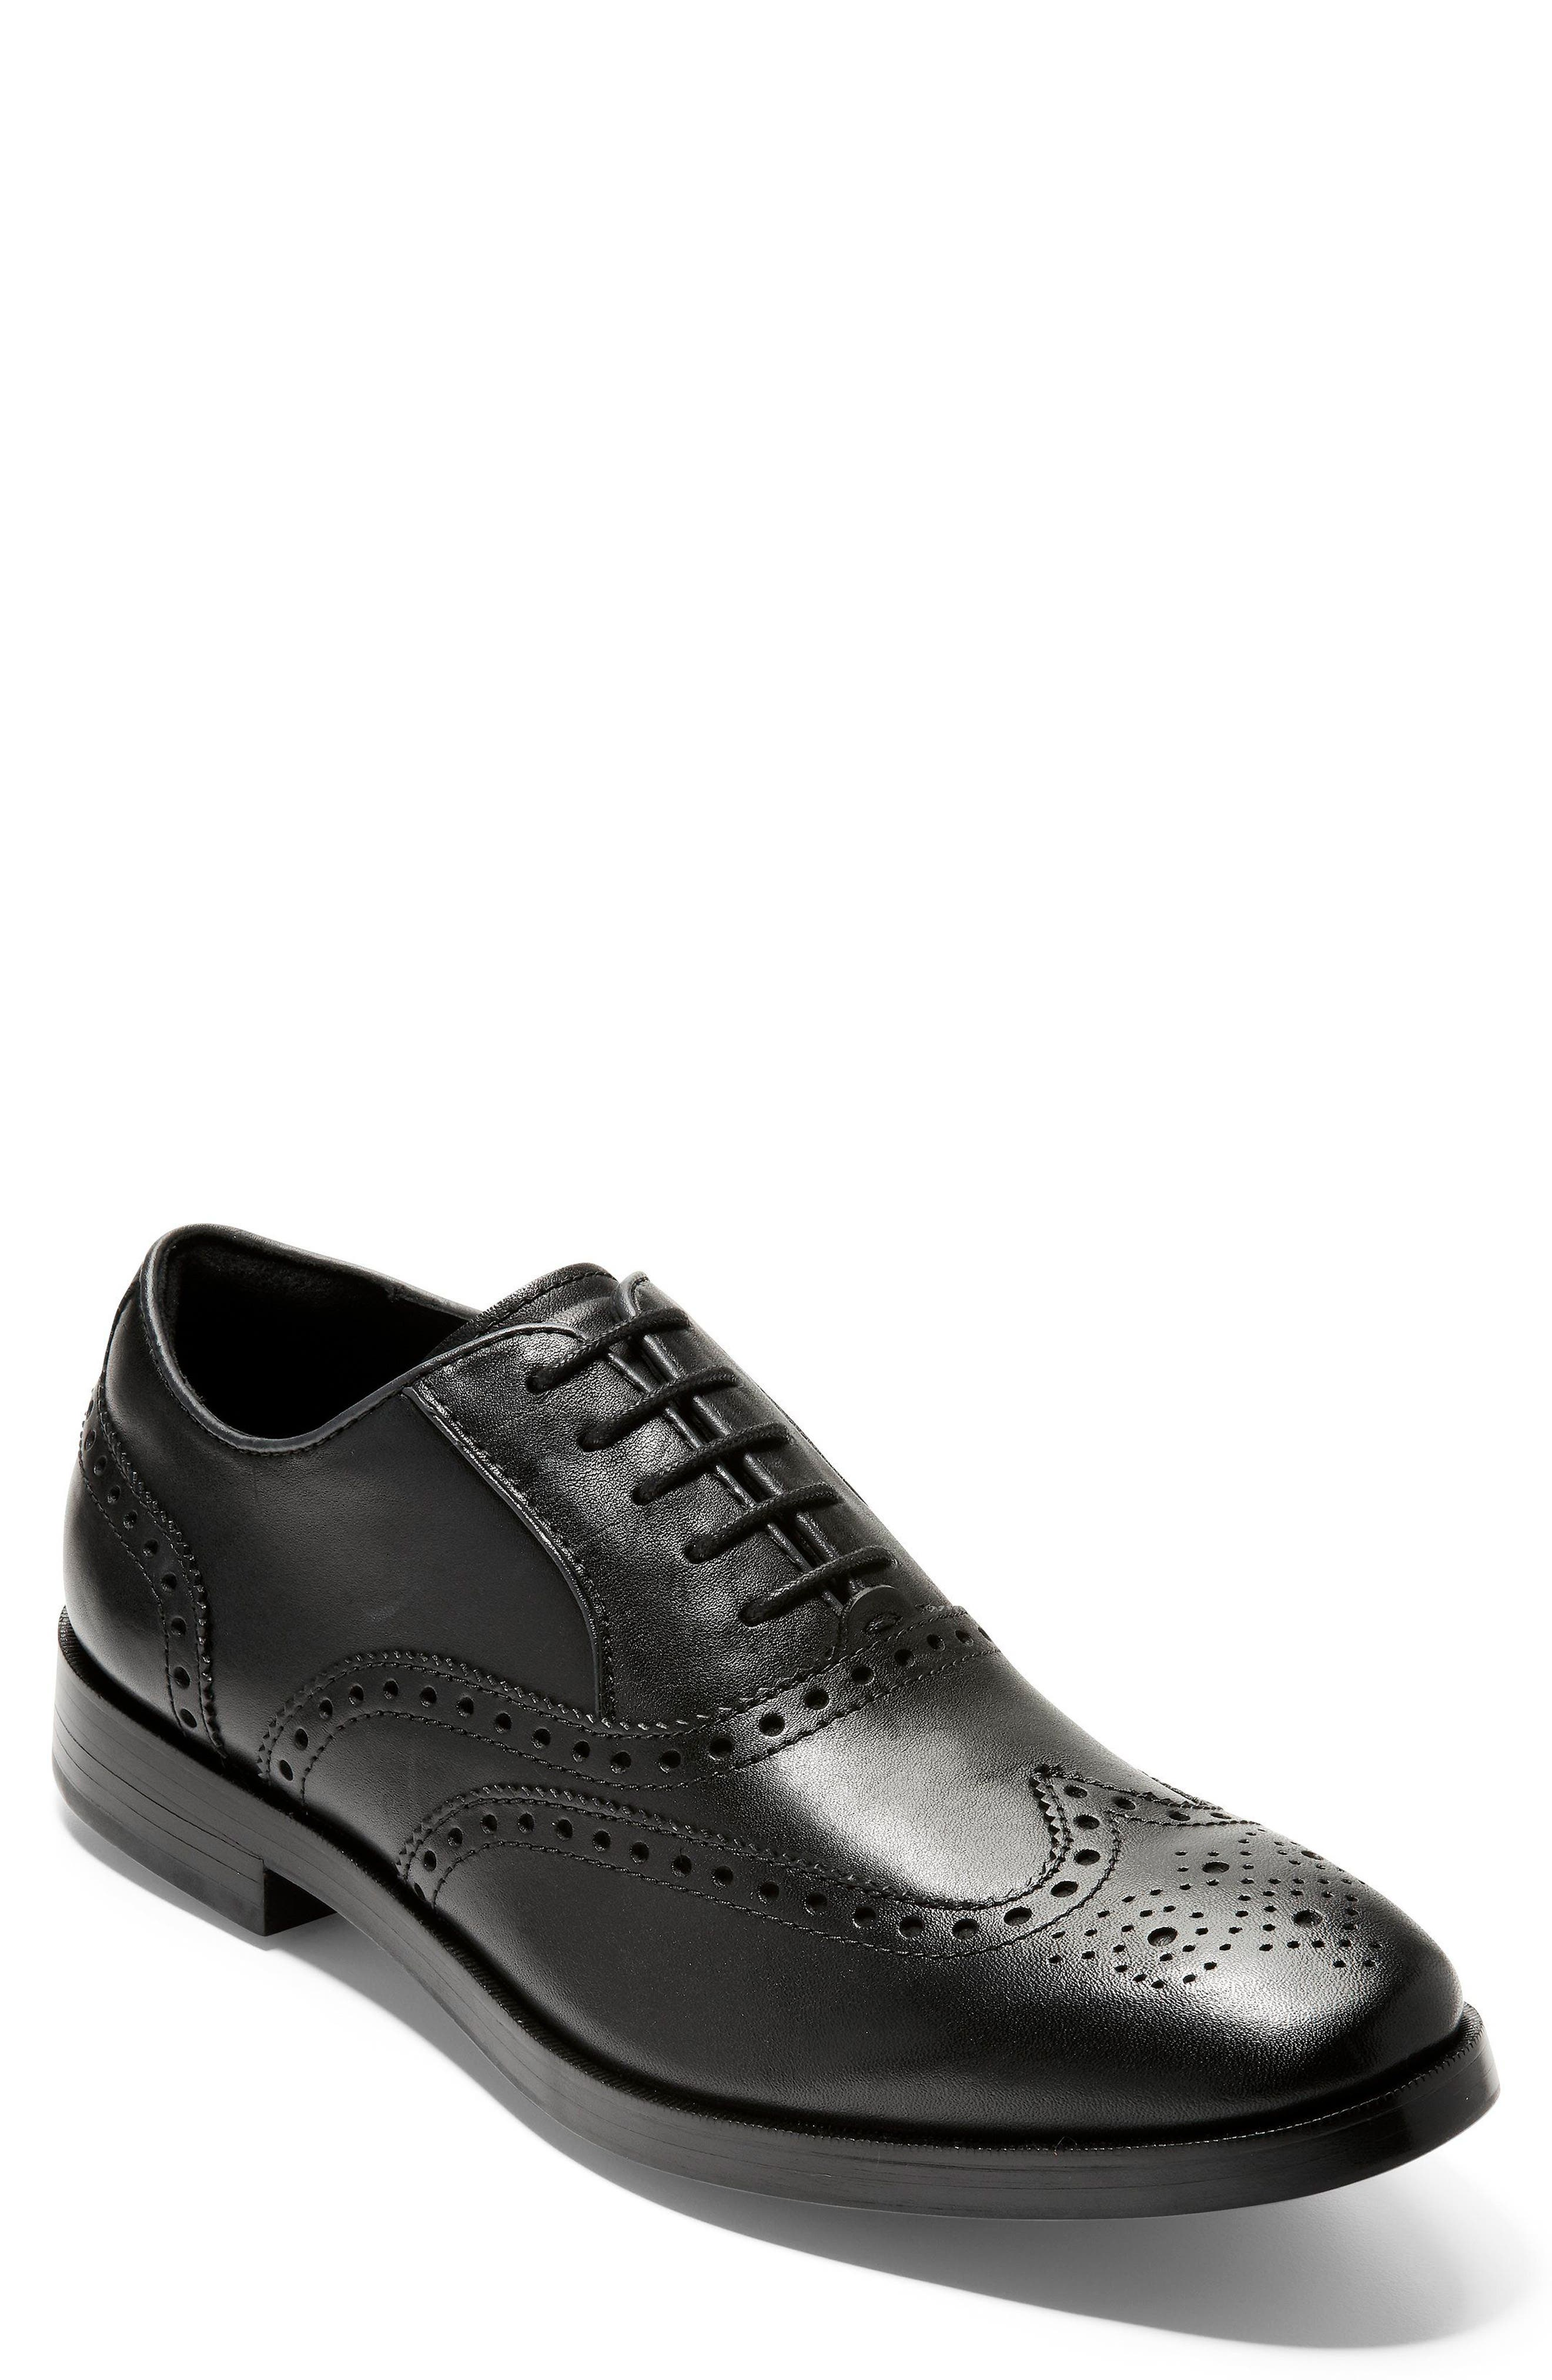 Hamilton Wingtip,                             Main thumbnail 1, color,                             BLACK LEATHER